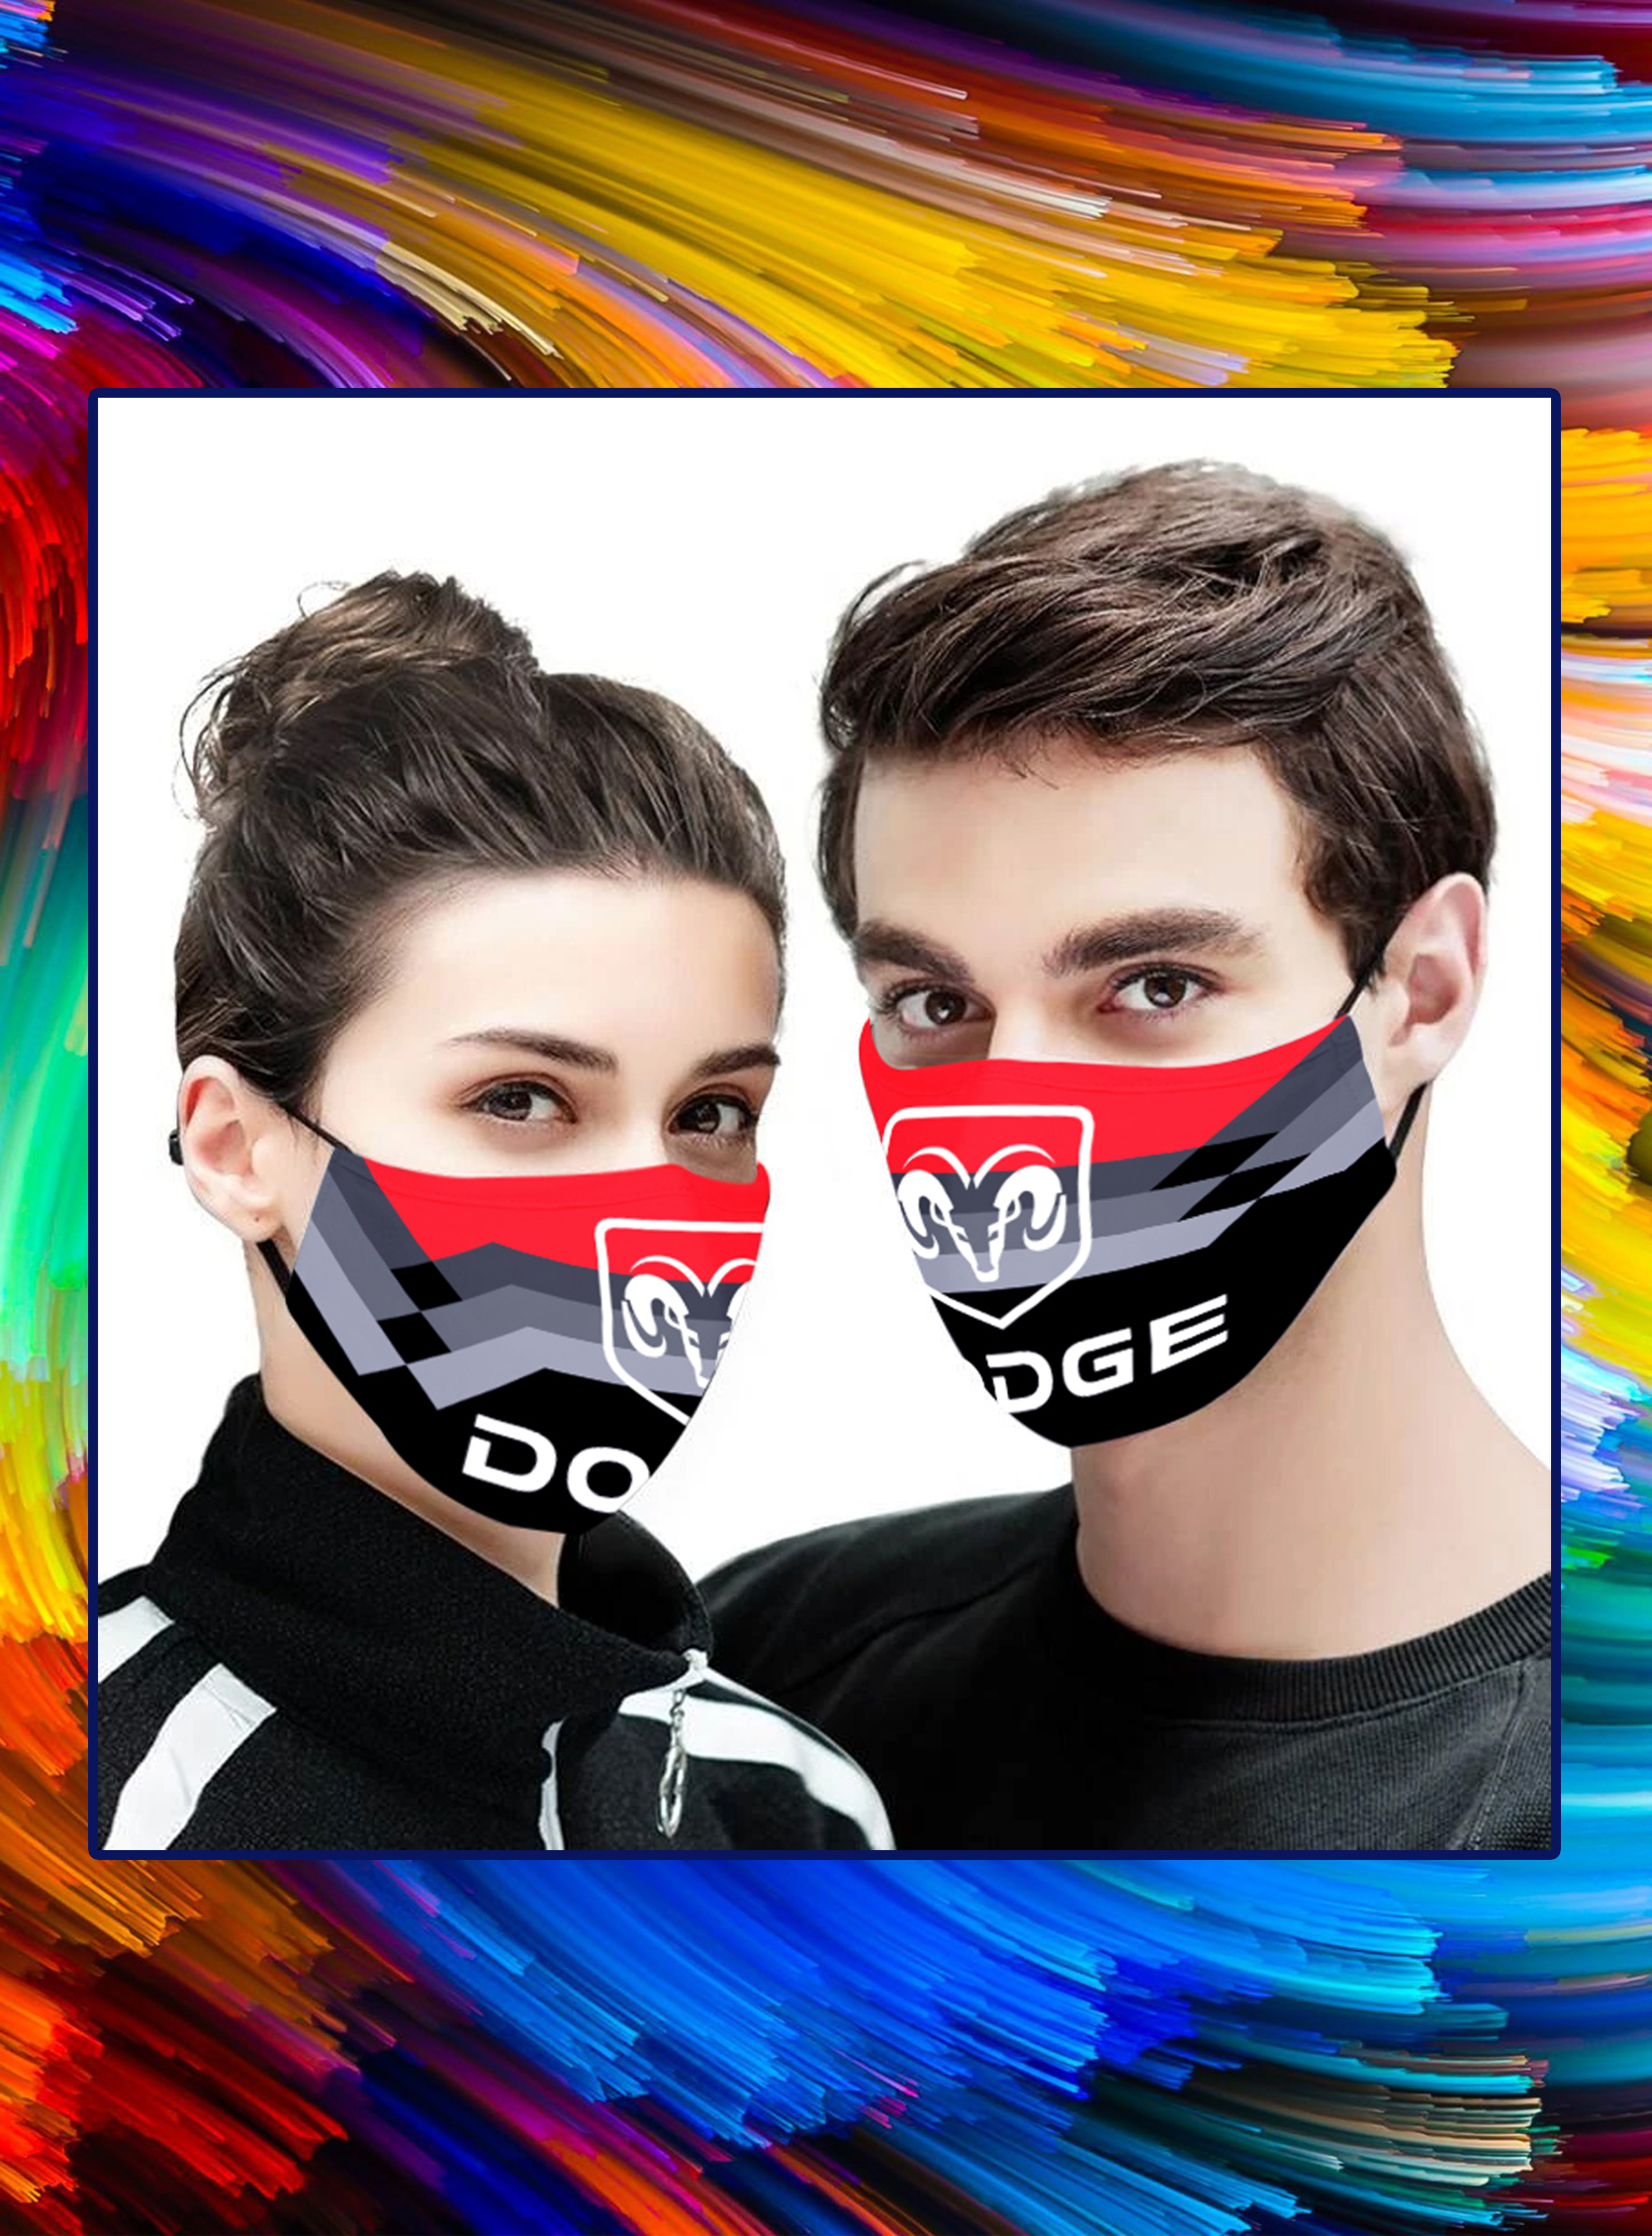 Dodge 3d face mask - pic 1